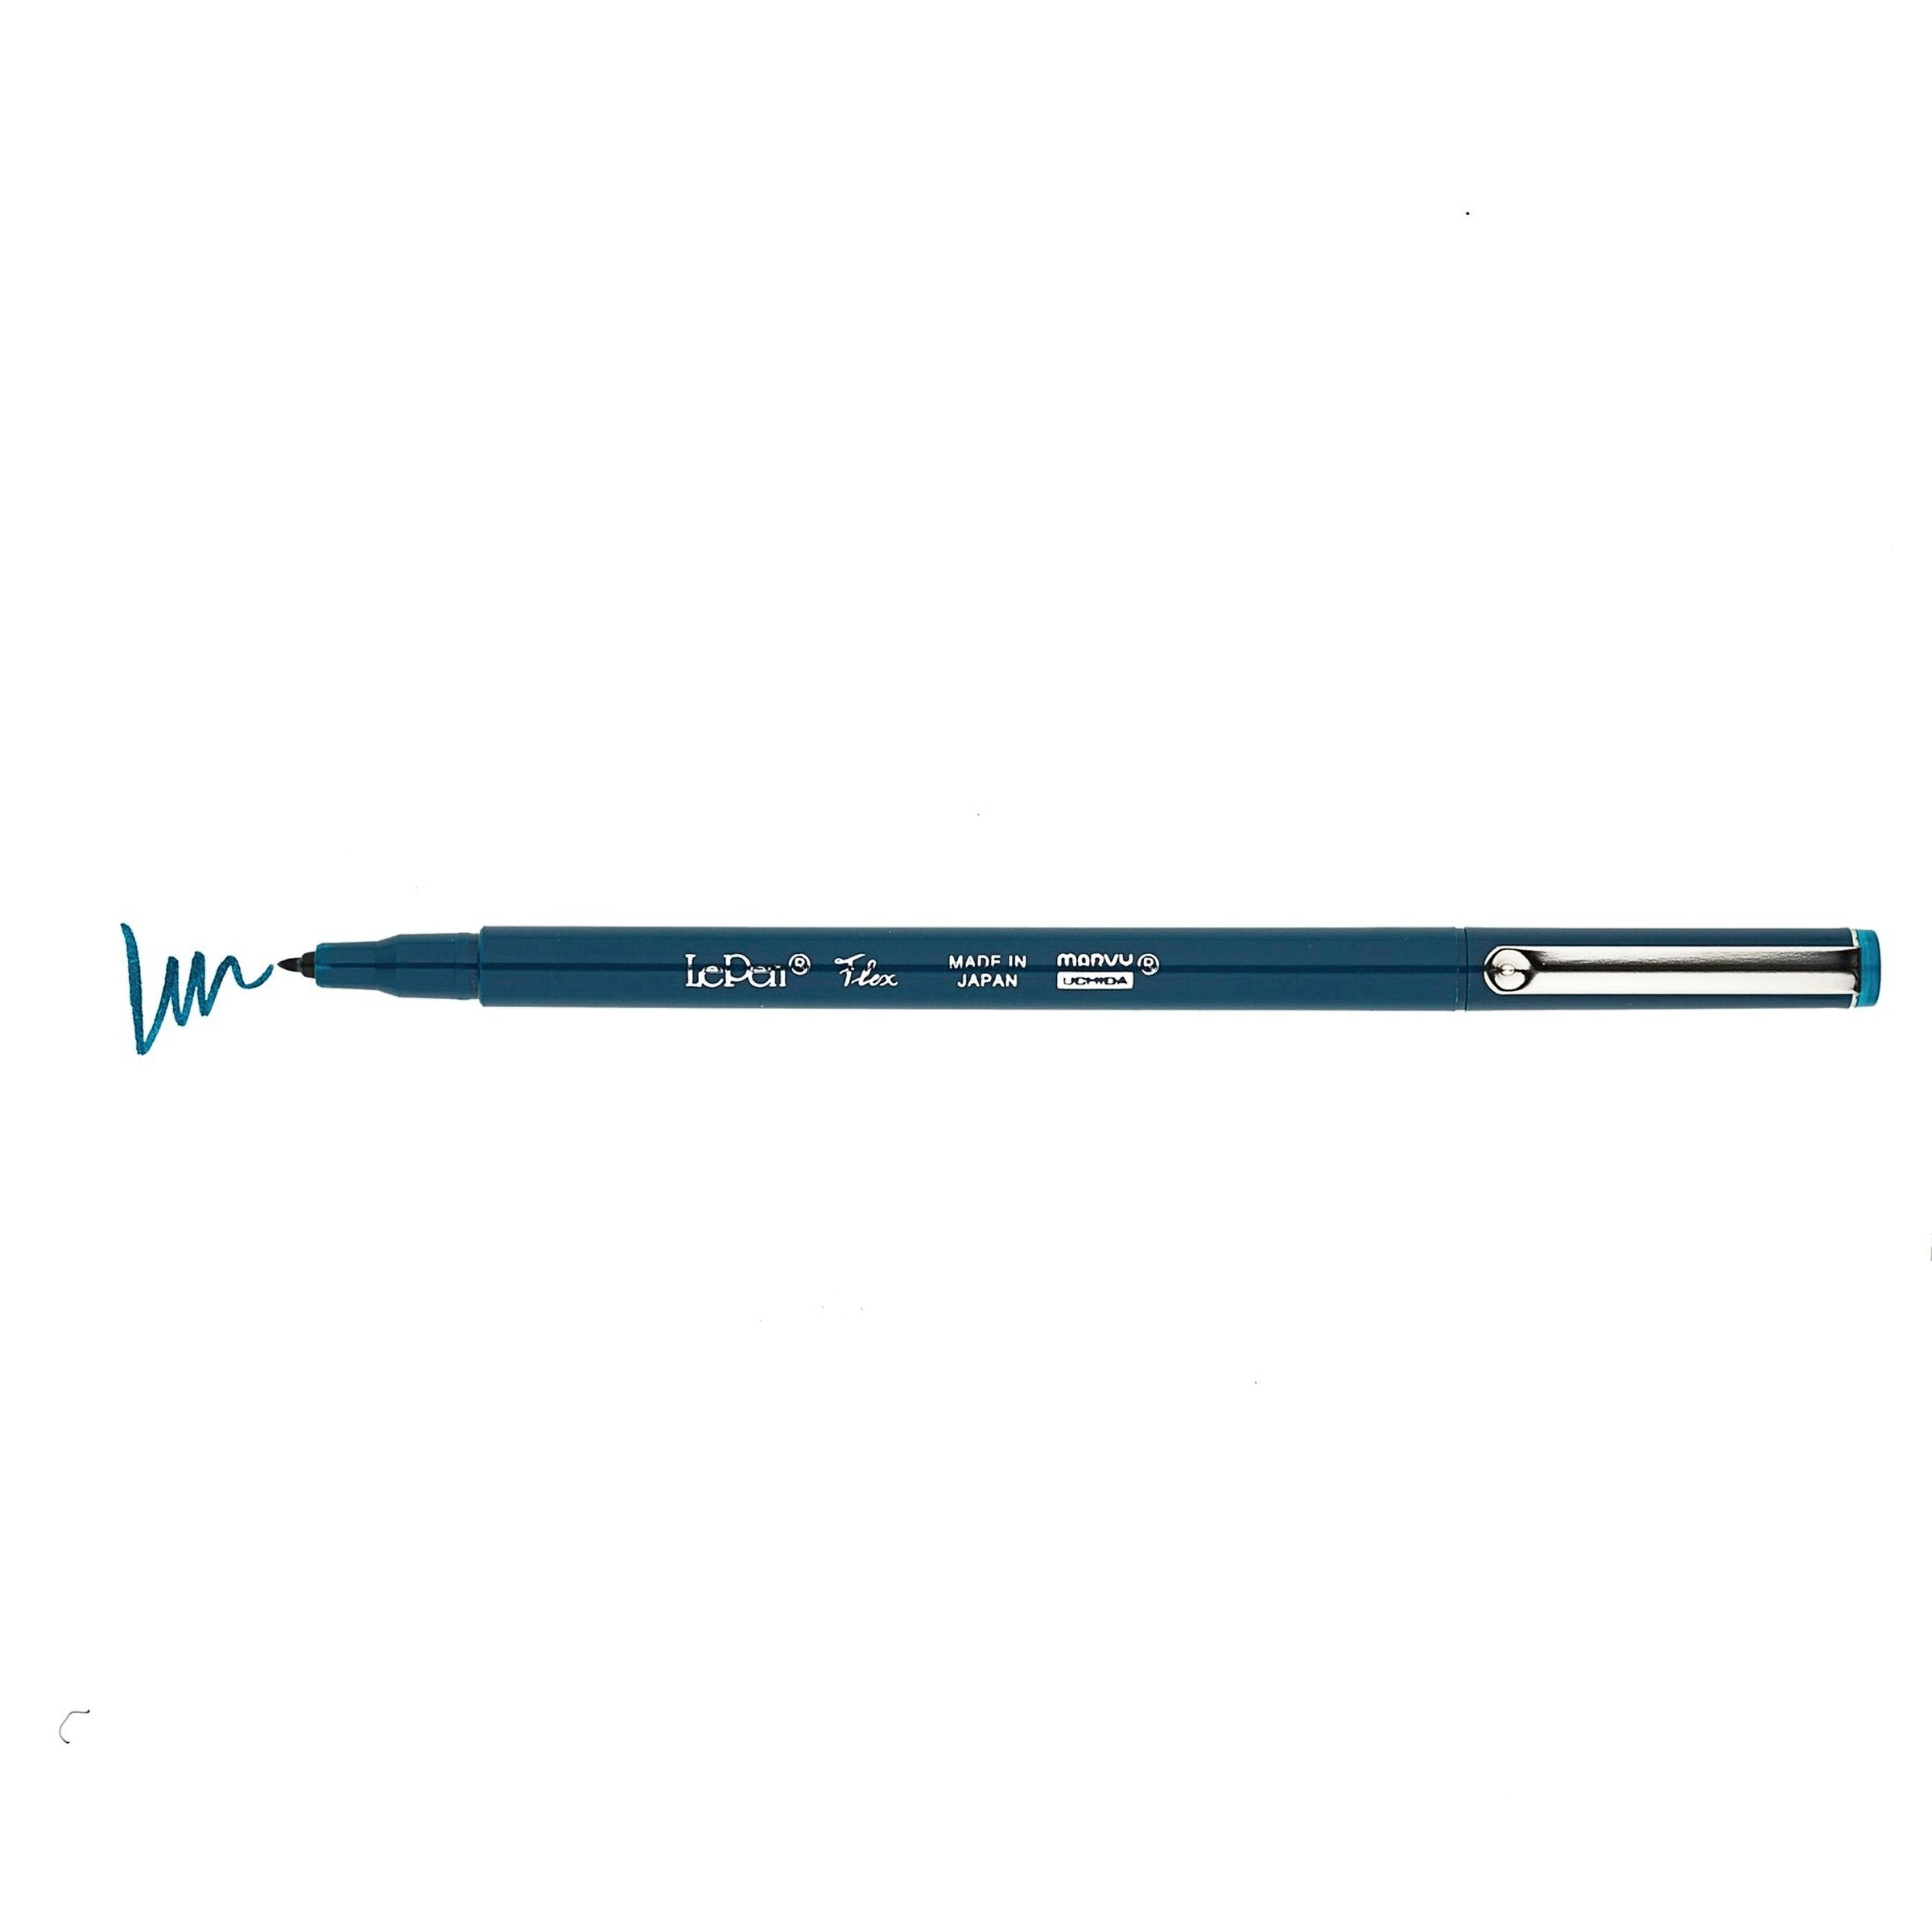 Marvy Le Pen FLEX Brush Pen Flexible JEWEL Pen NAVY 4800-6B | Single Pen or Complete Set - The Stationery Life!